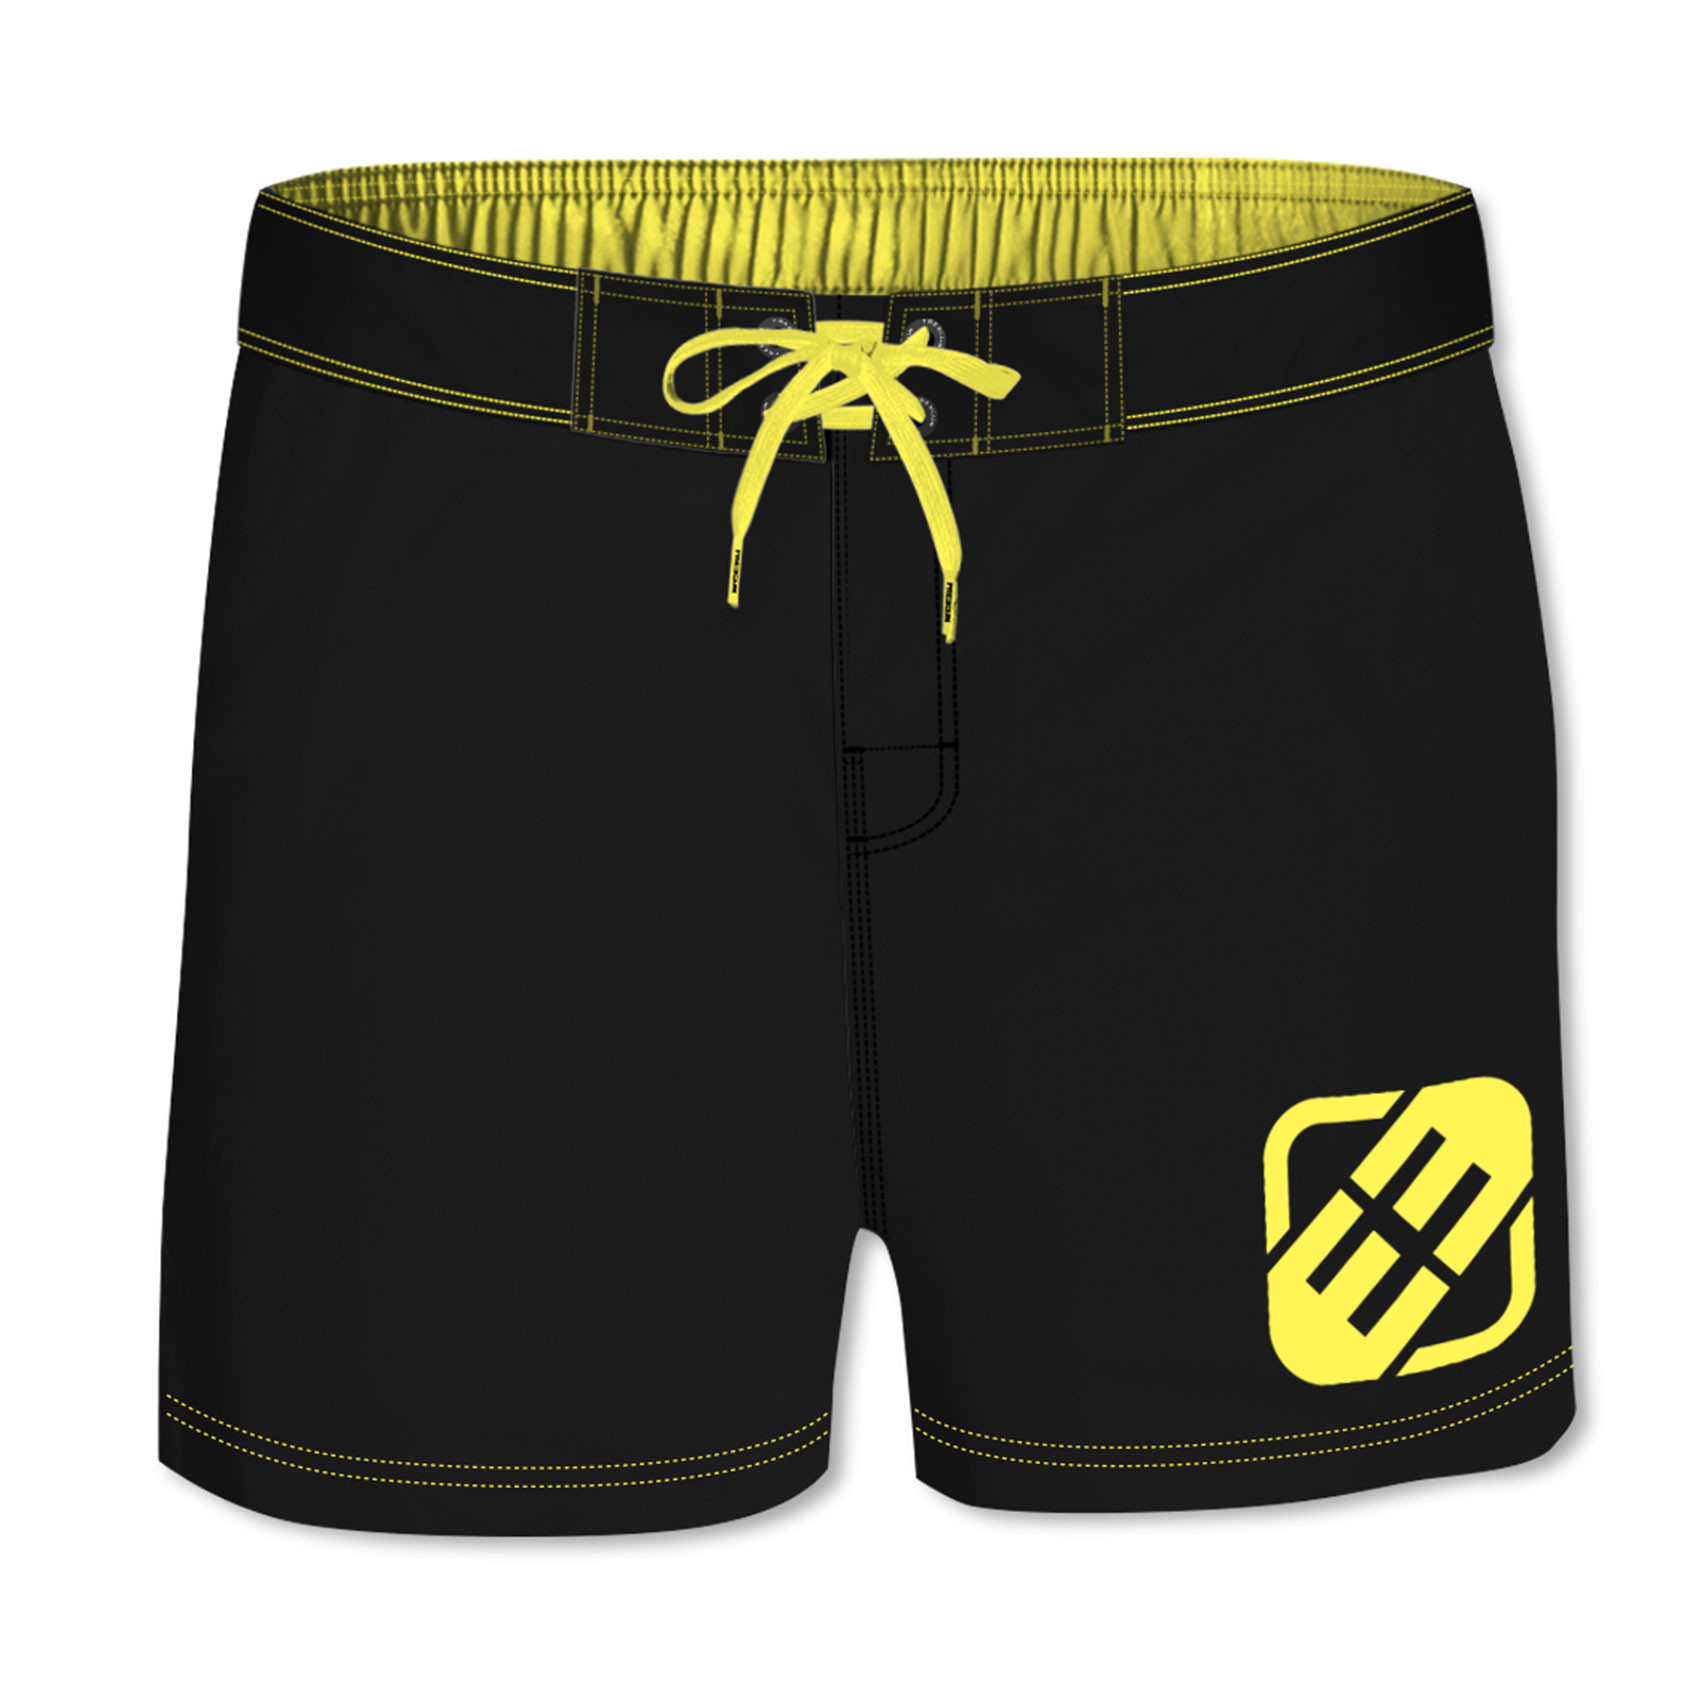 Boardshort court garçon freegun uni jaune (photo)